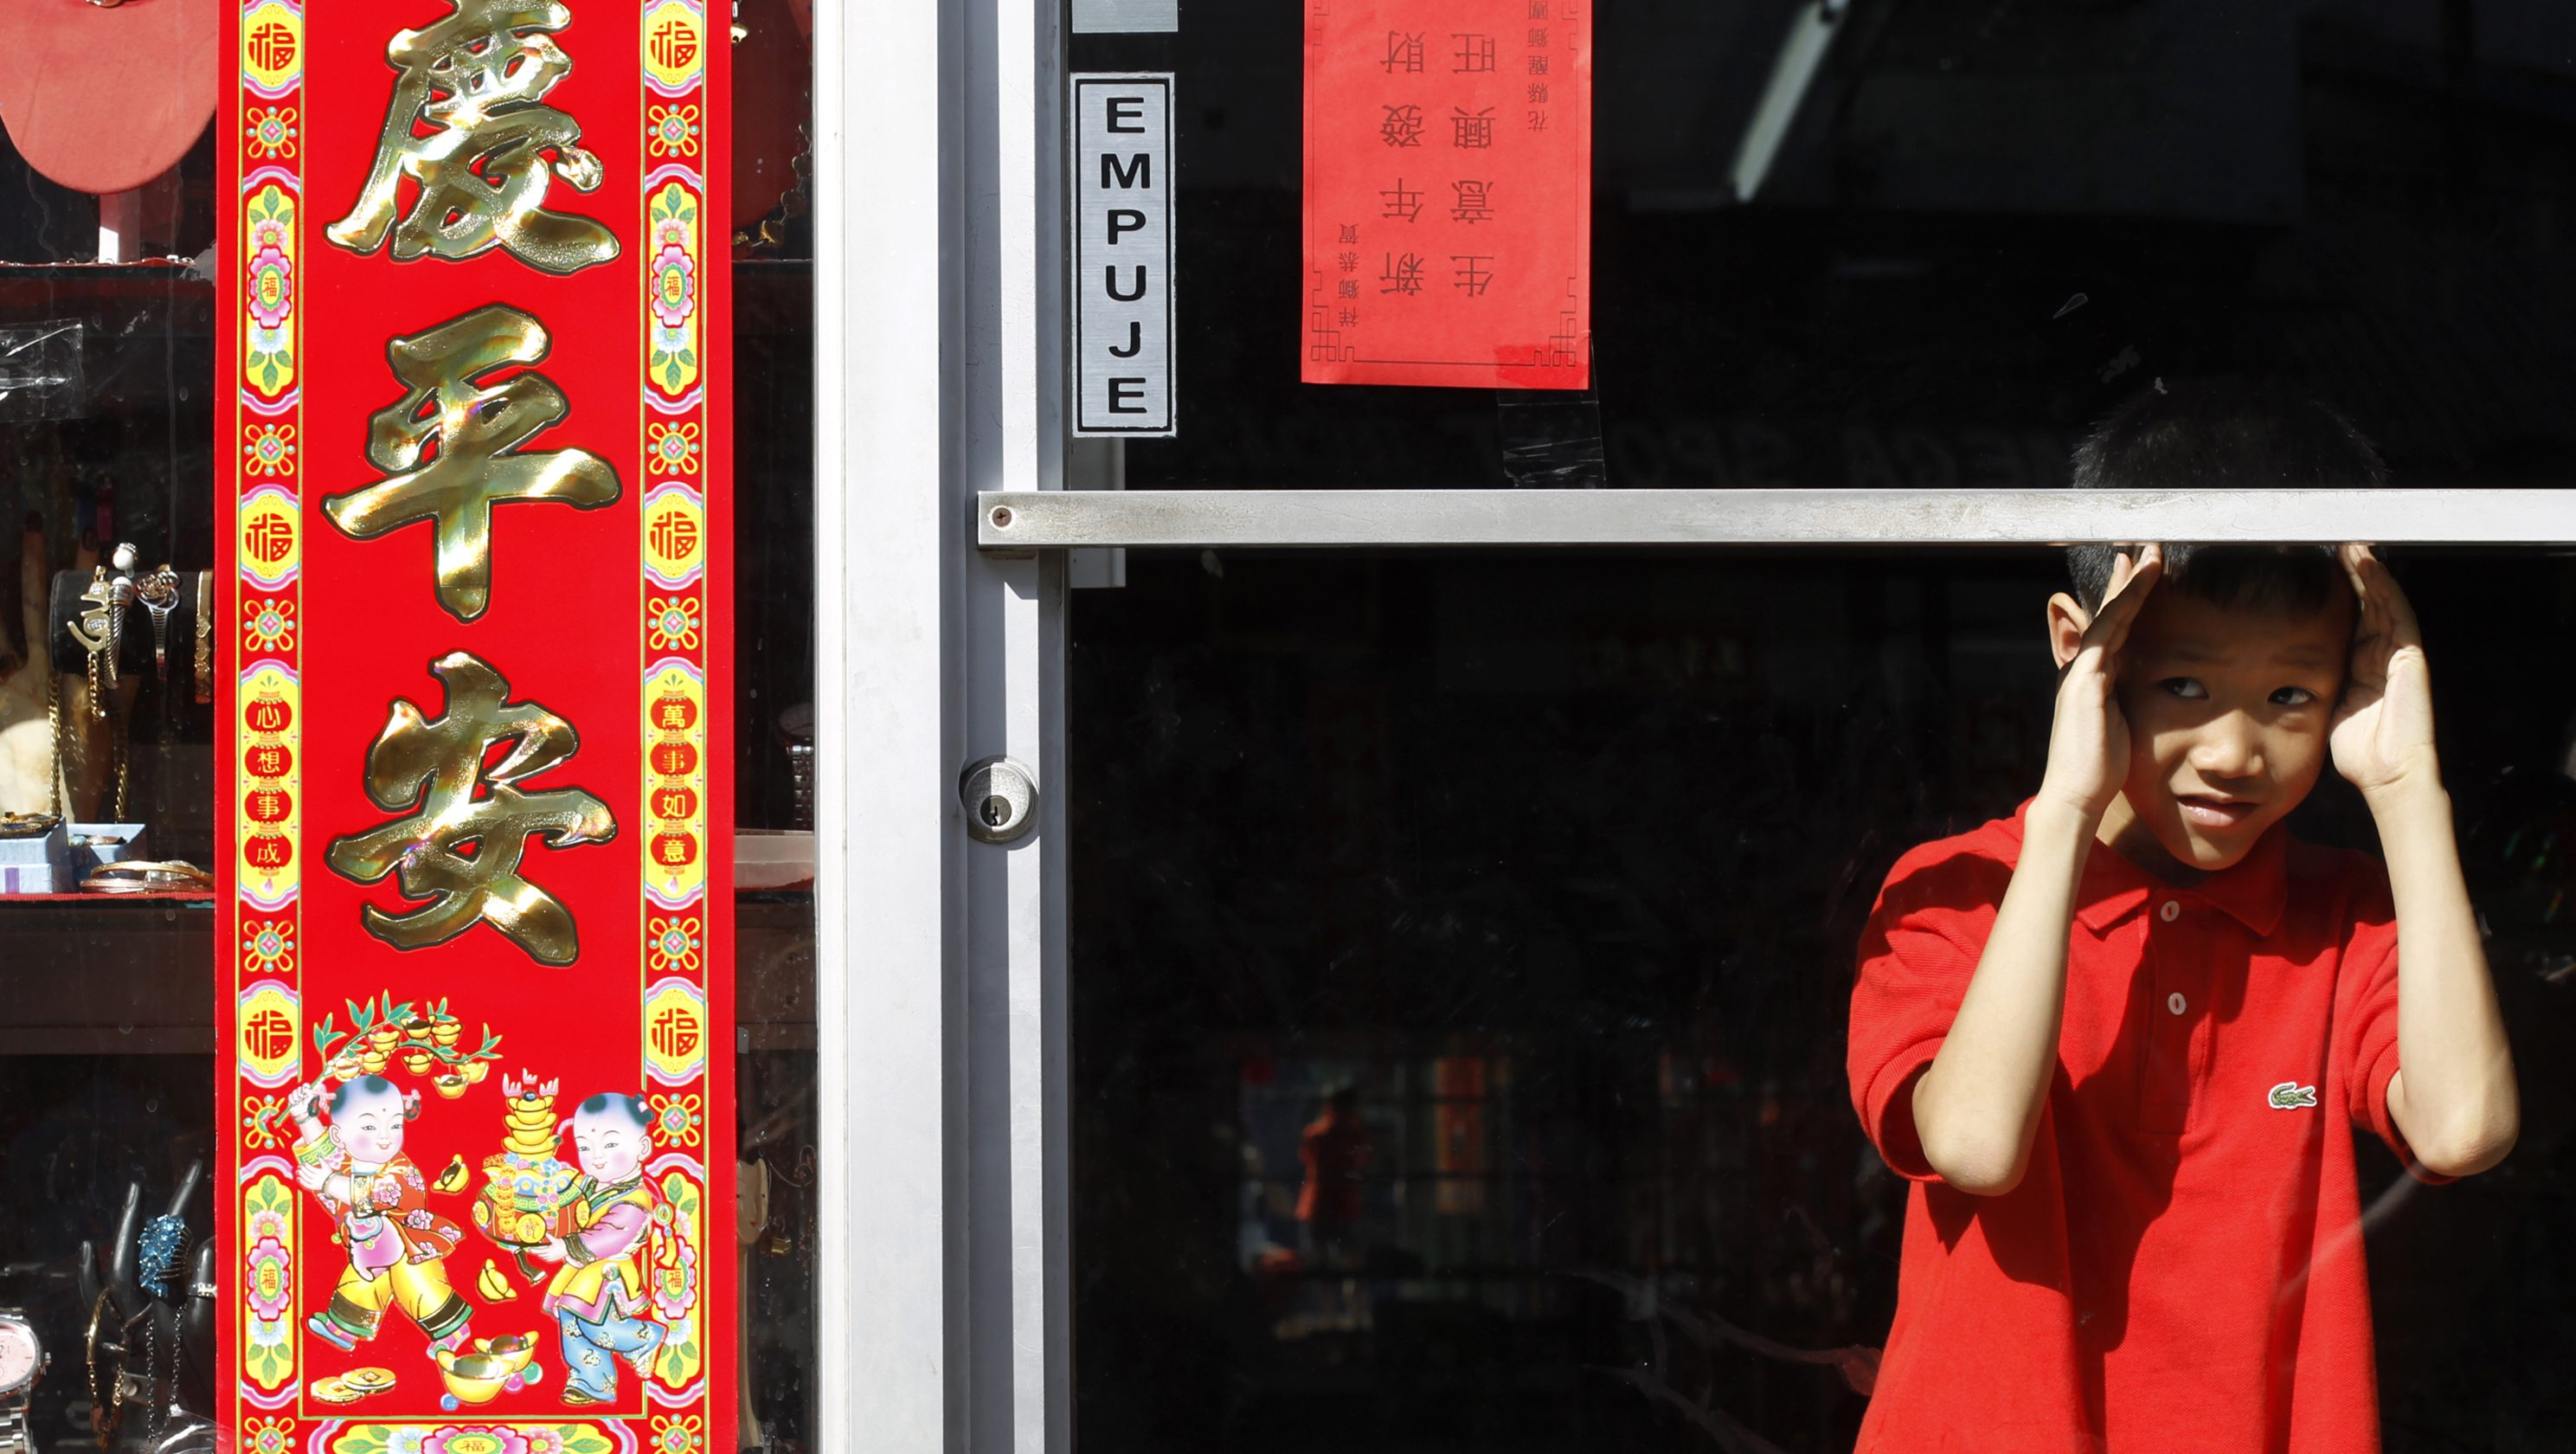 A boy looks through a shop glass door during the Chinese Lunar New Year celebrations at Chinatown in Panama City February 19, 2015. According to the lunar calendar, the Chinese New Year, which welcomes the year of the Sheep (also known as the Year of the Goat or Ram), falls on February 19 this year. REUTERS/Carlos Jasso (PANAMA - Tags: SOCIETY) - RTR4QB1T